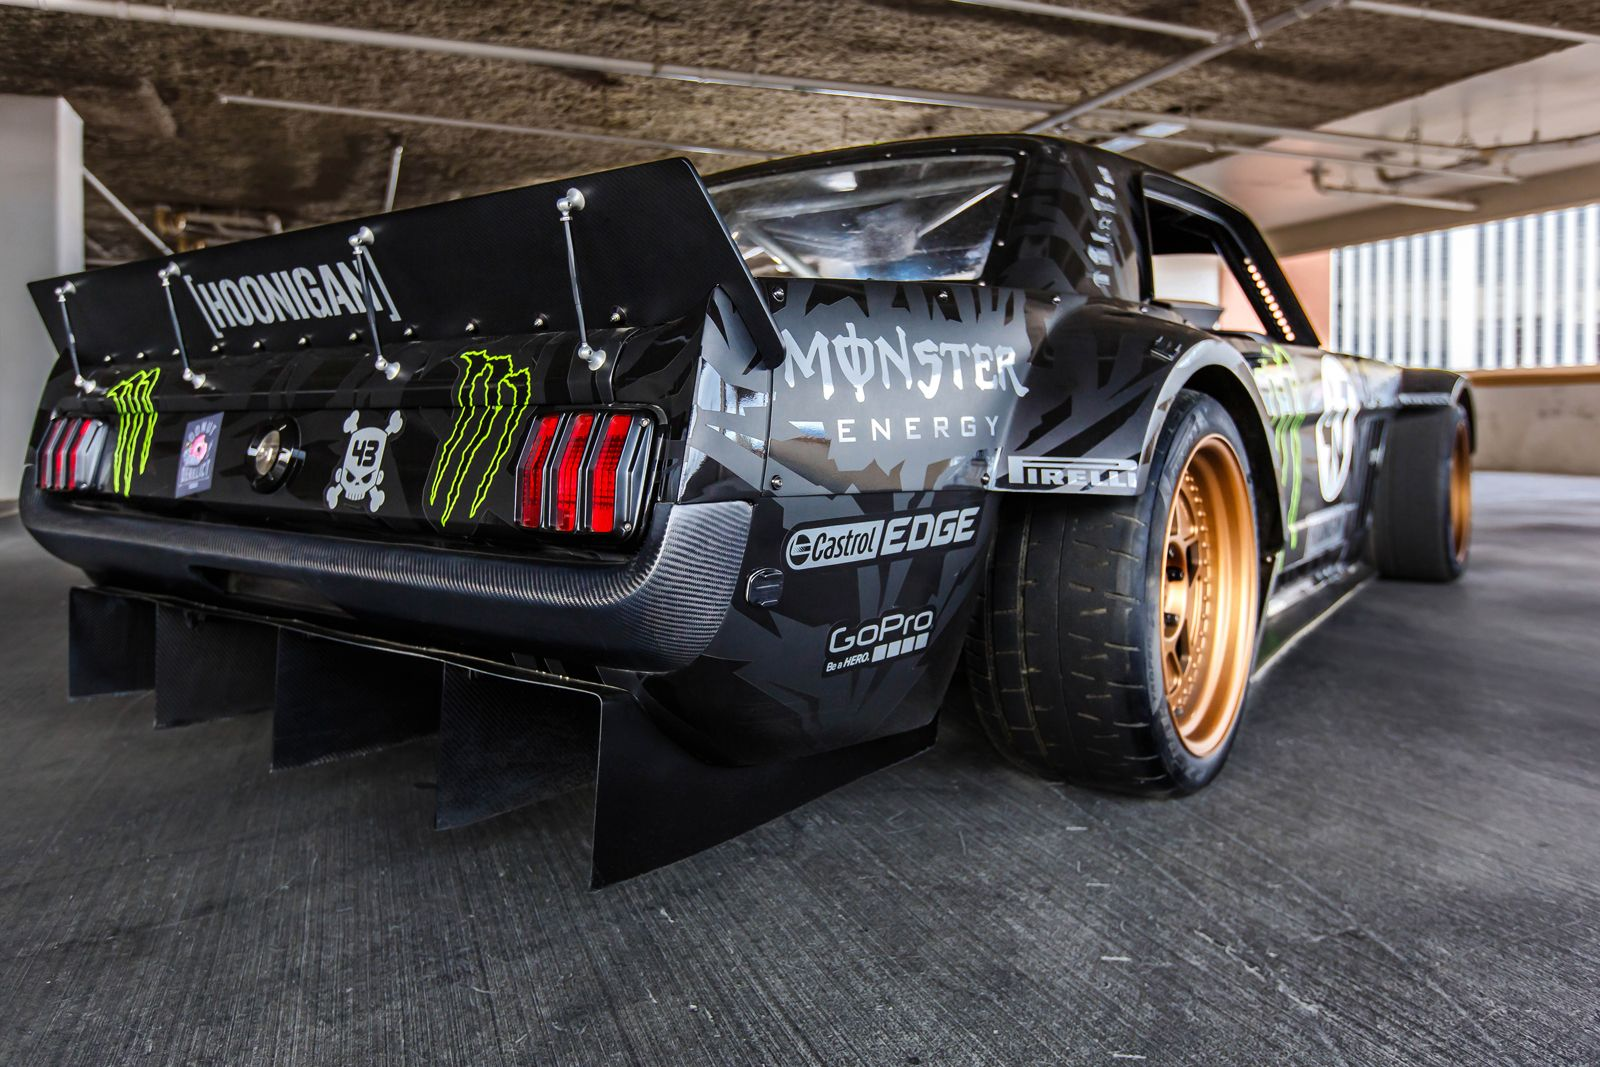 845hp 1965 Ford Mustang Awd Monster Is Ken Block S Car For Gymkhana 7 Ford Mustang Ken Block Mustang Ken Block